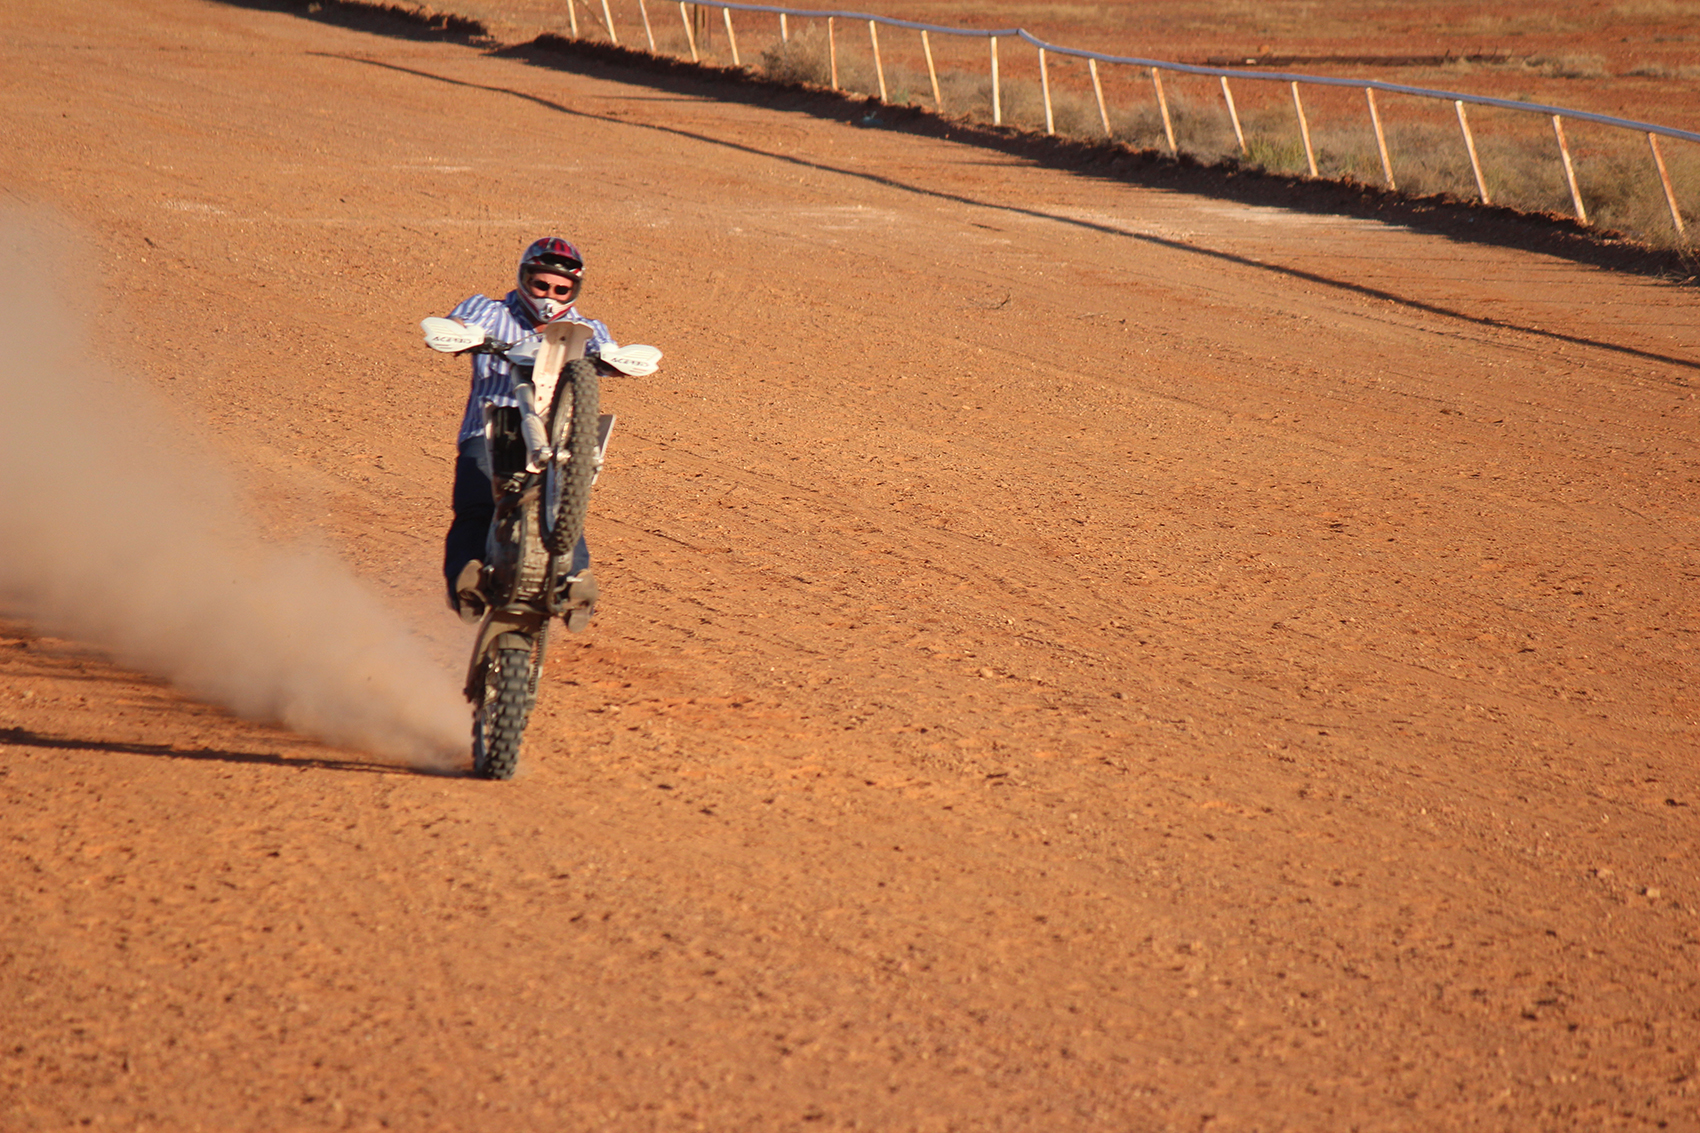 Mono motorbike event: Oodnadatta Races and Gymkhana